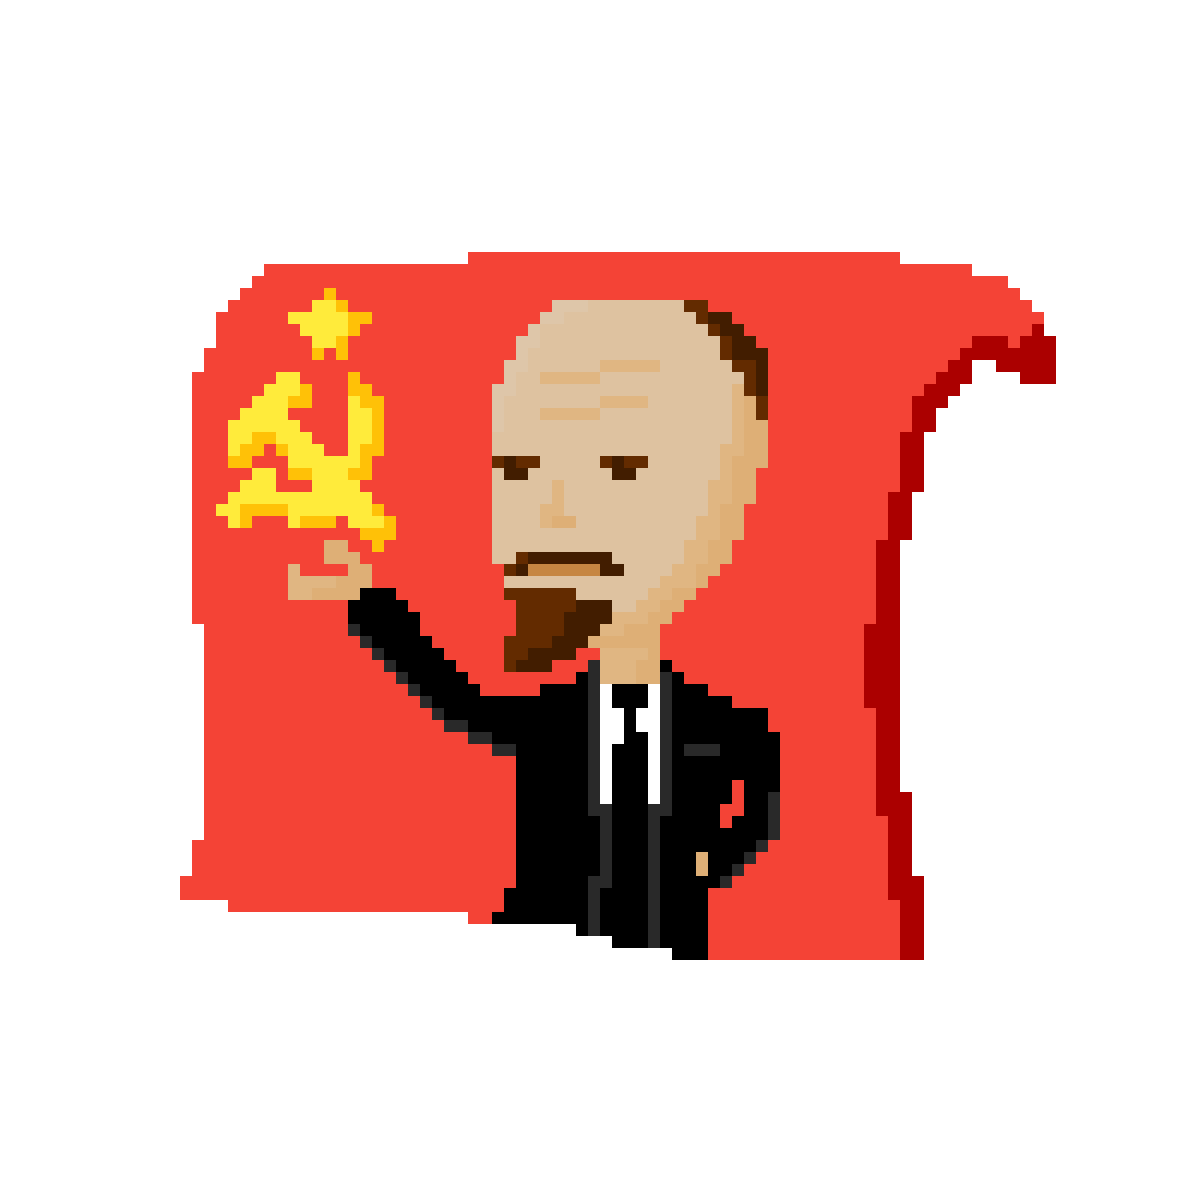 Lenin drawing red. Pixilart icon by fiitz